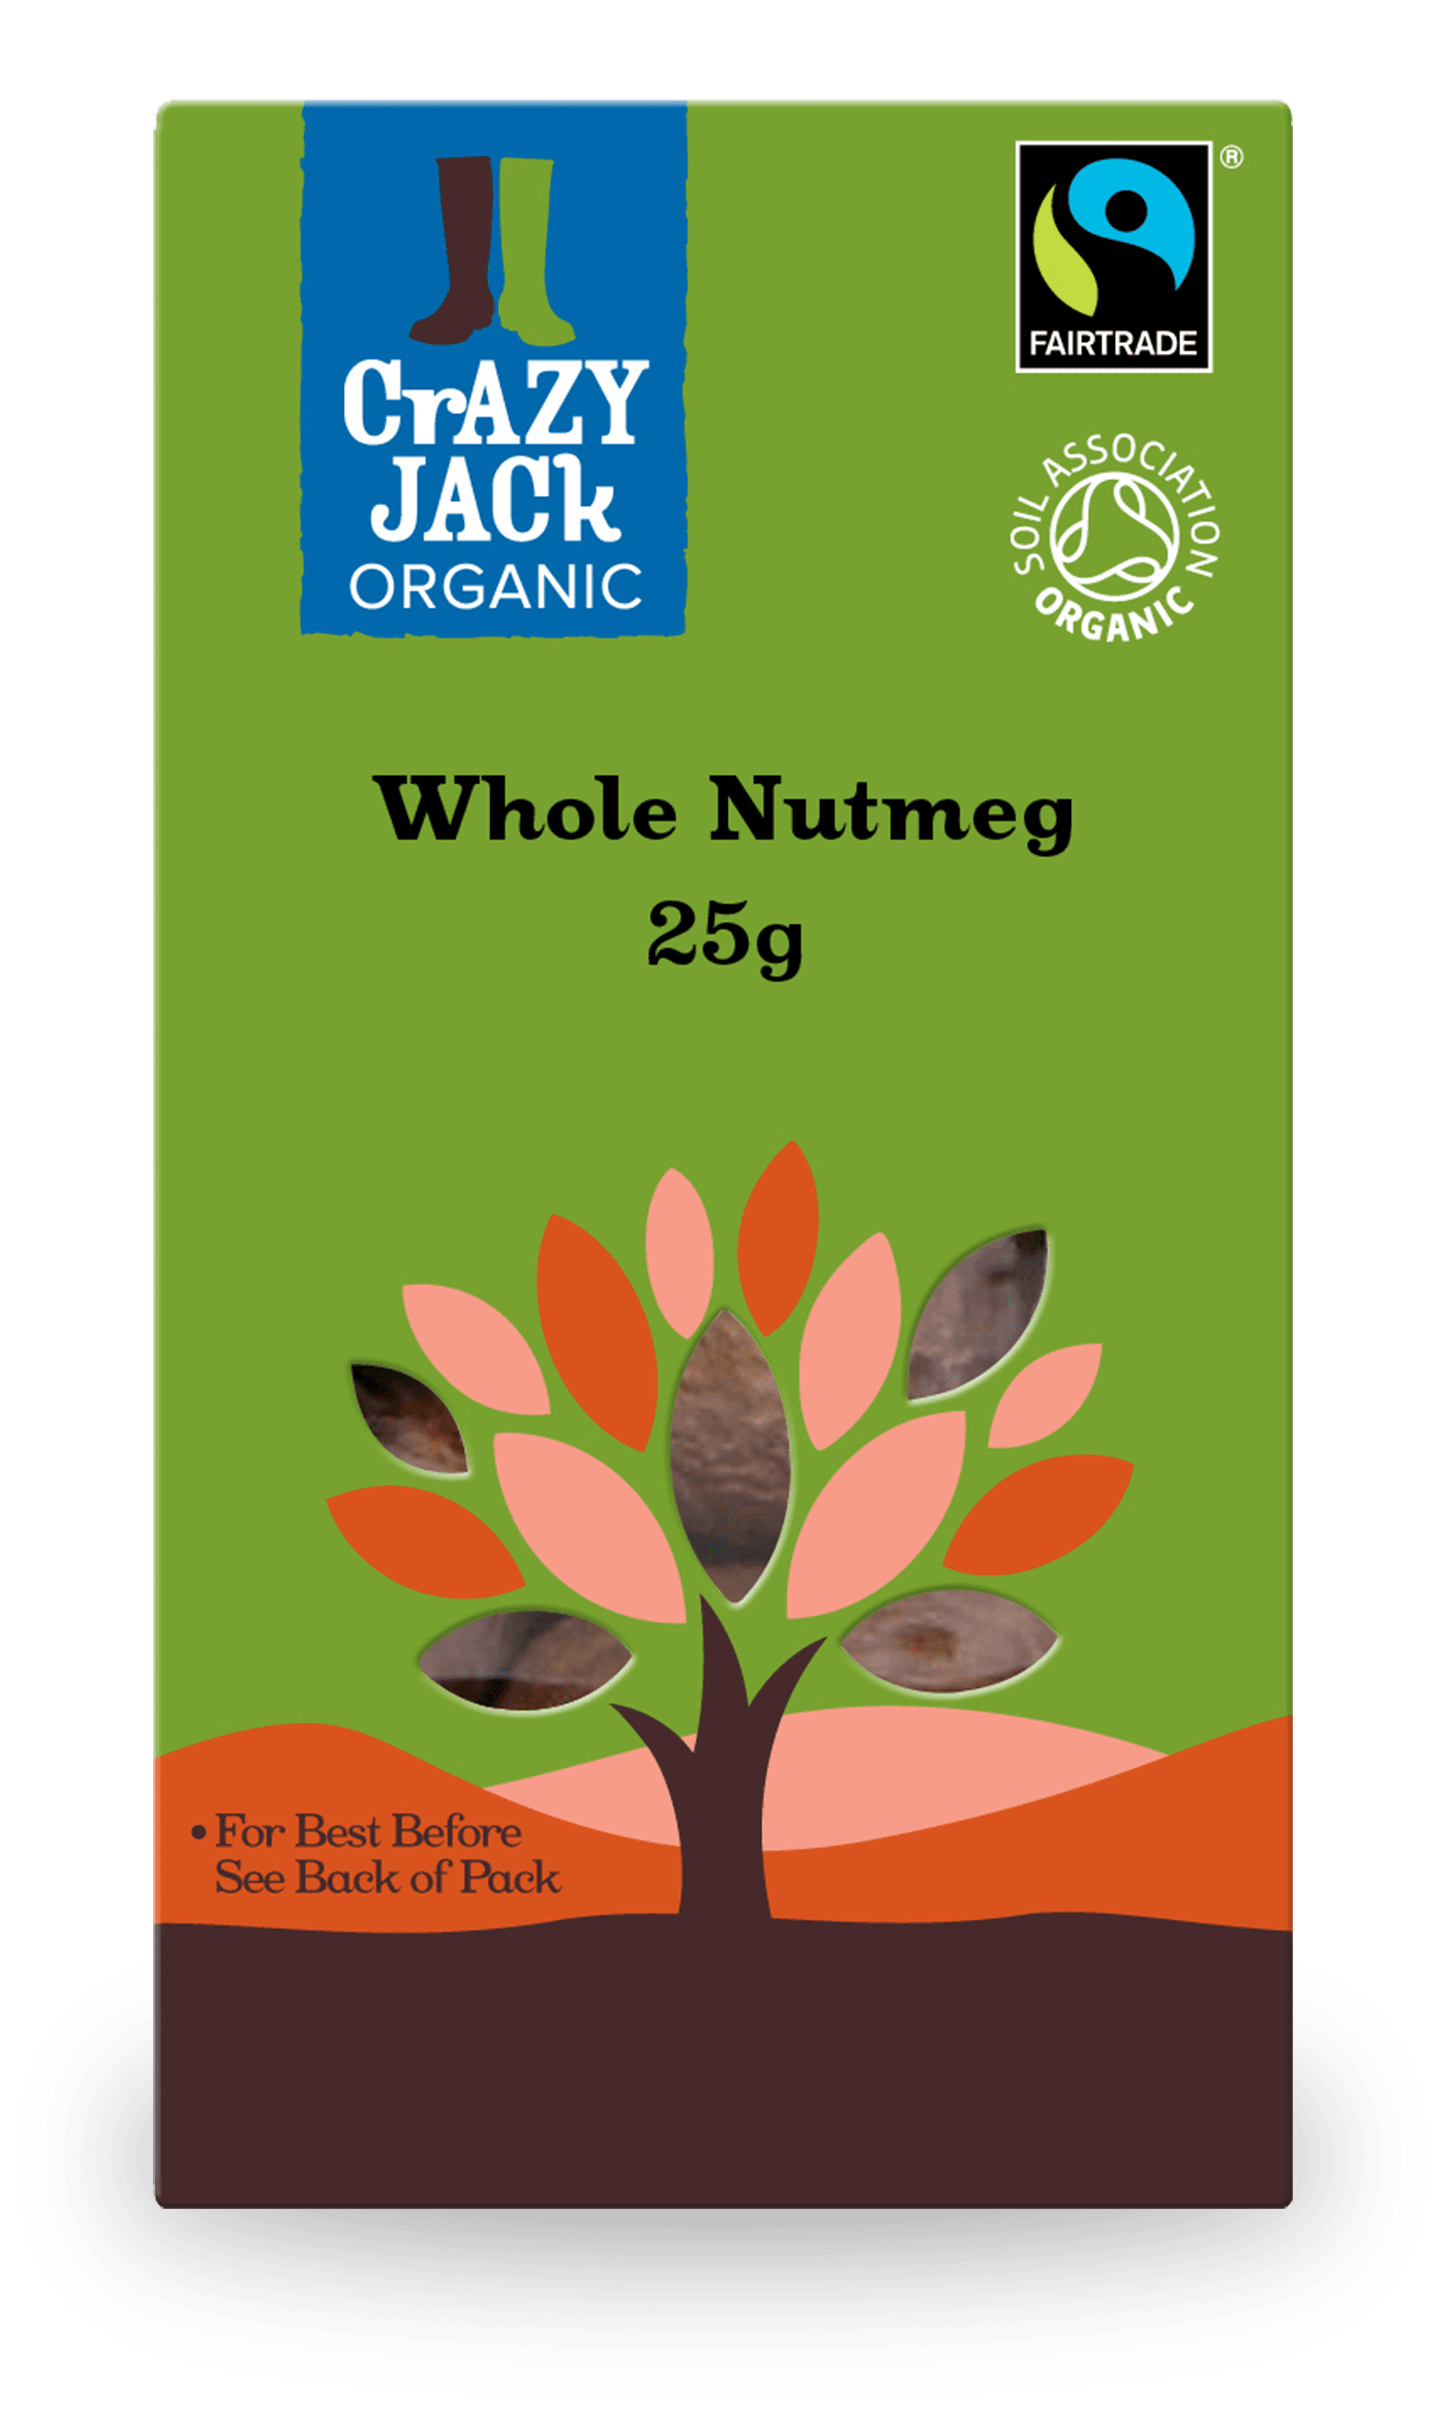 25g packet of organic whole nutmeg